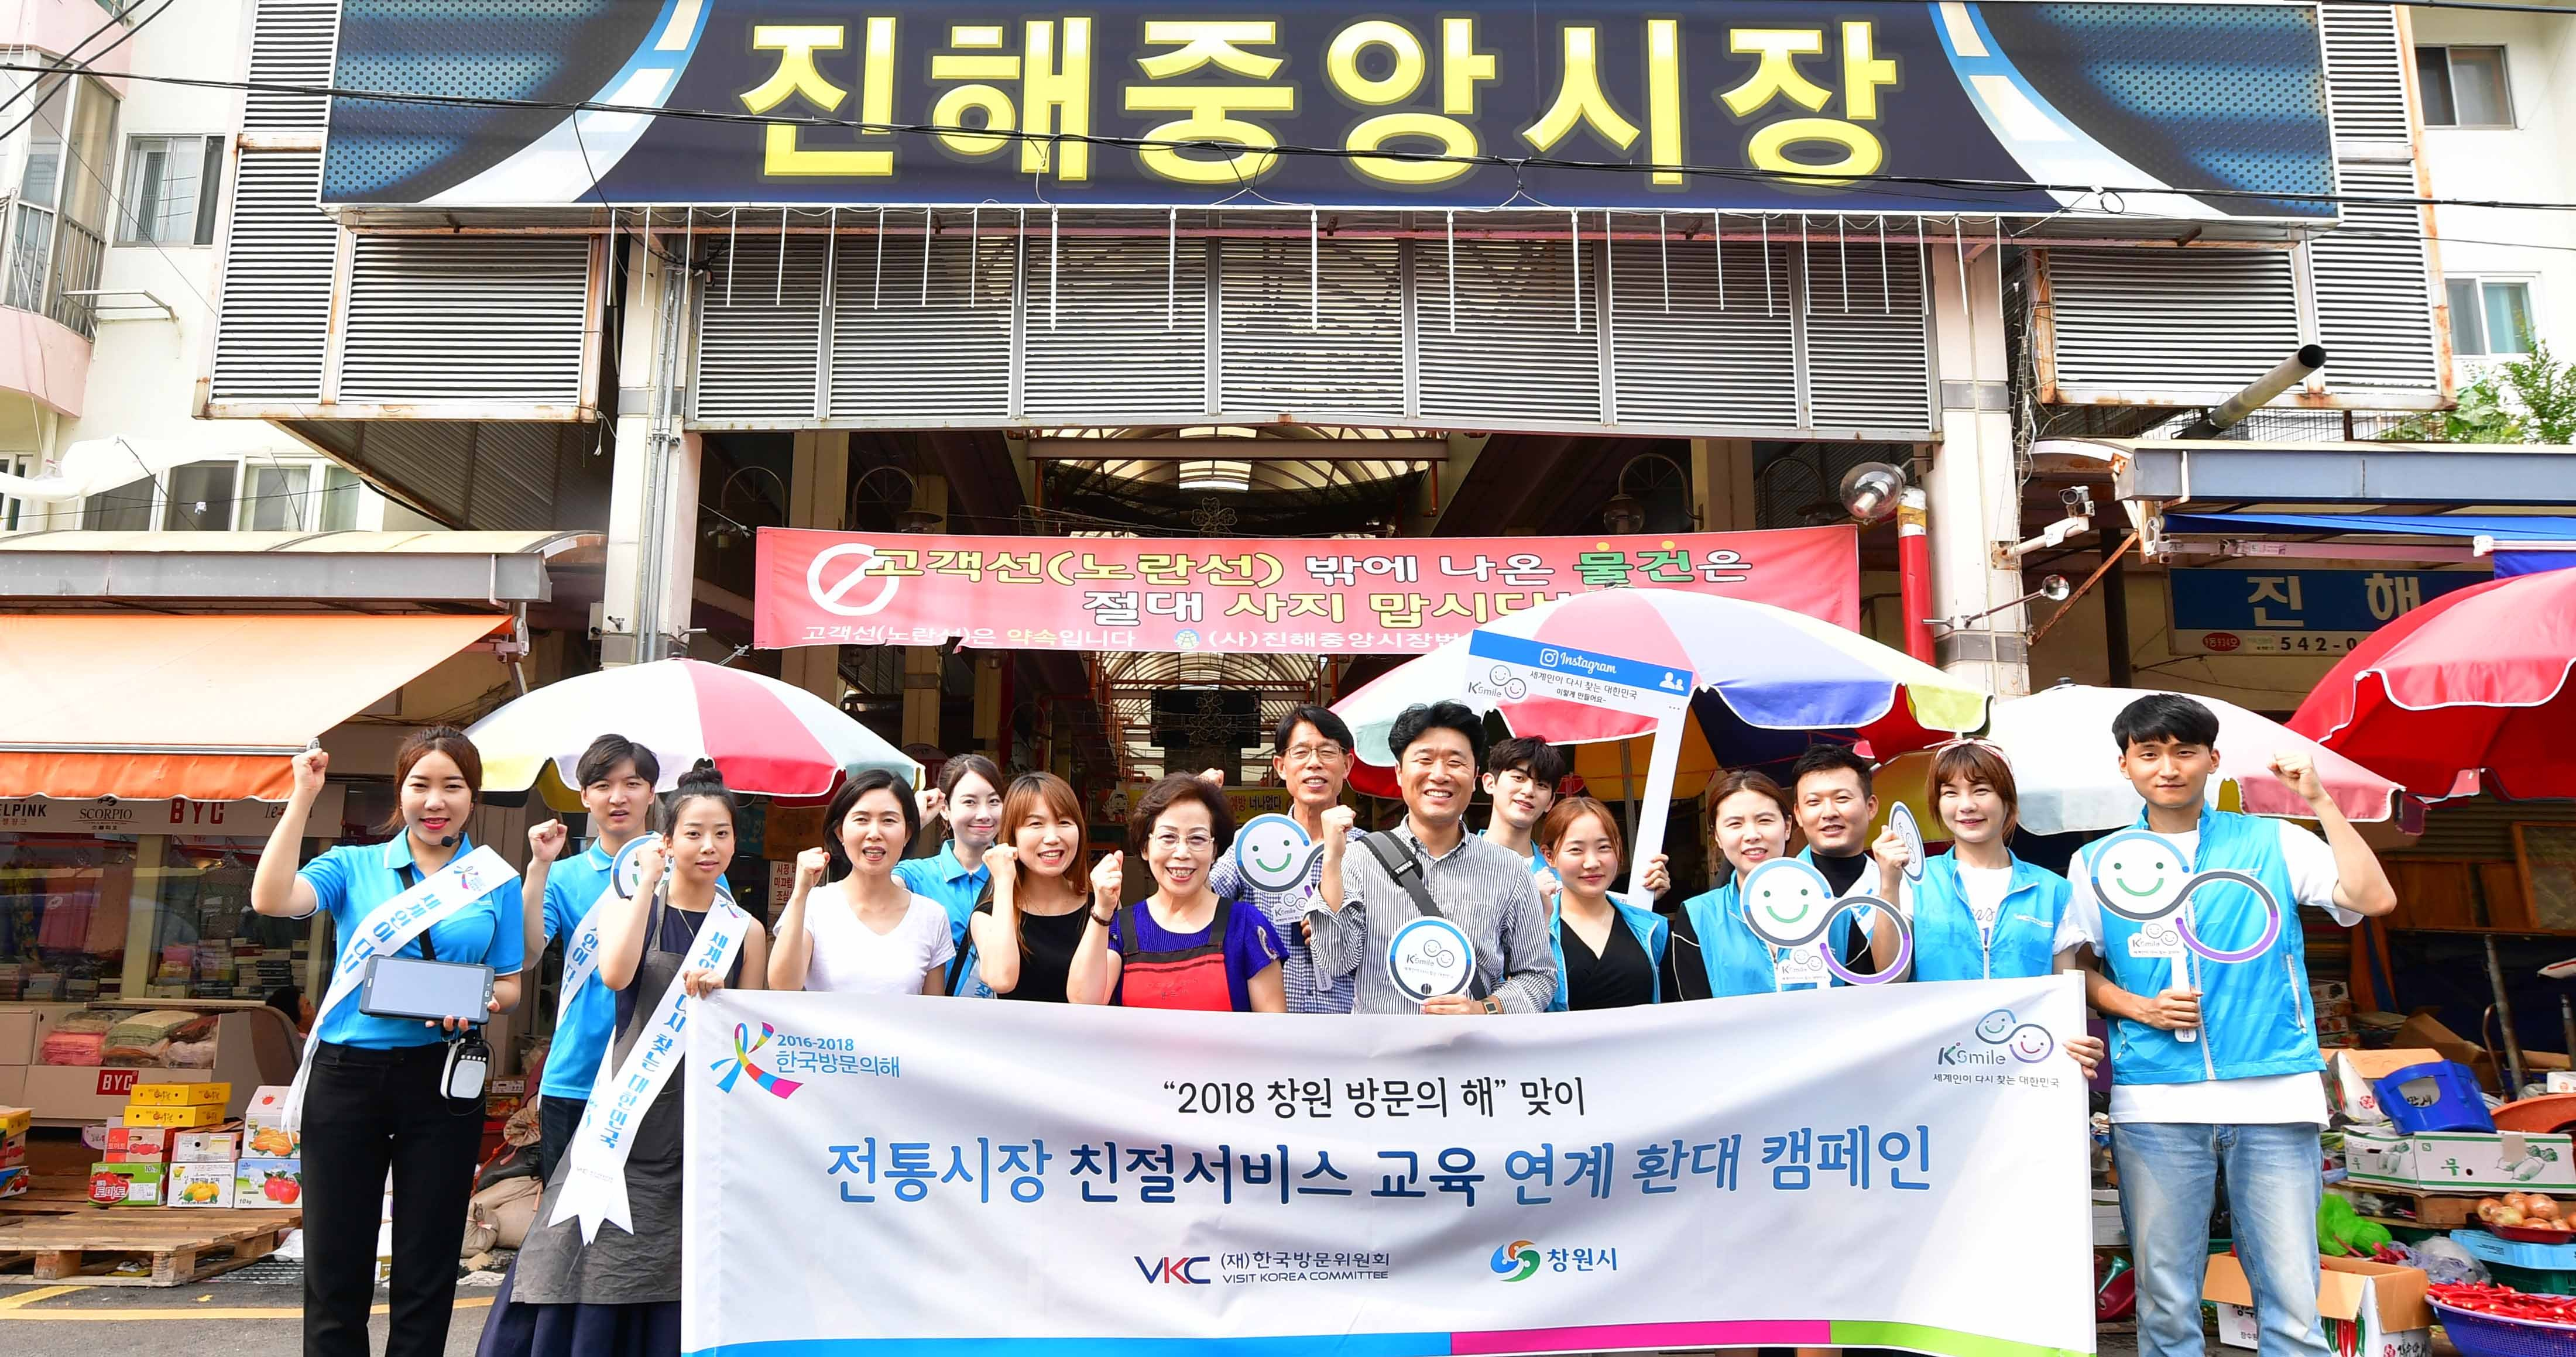 Welcome Campaign Held in Celebration of 2018 Visit Changwon Year